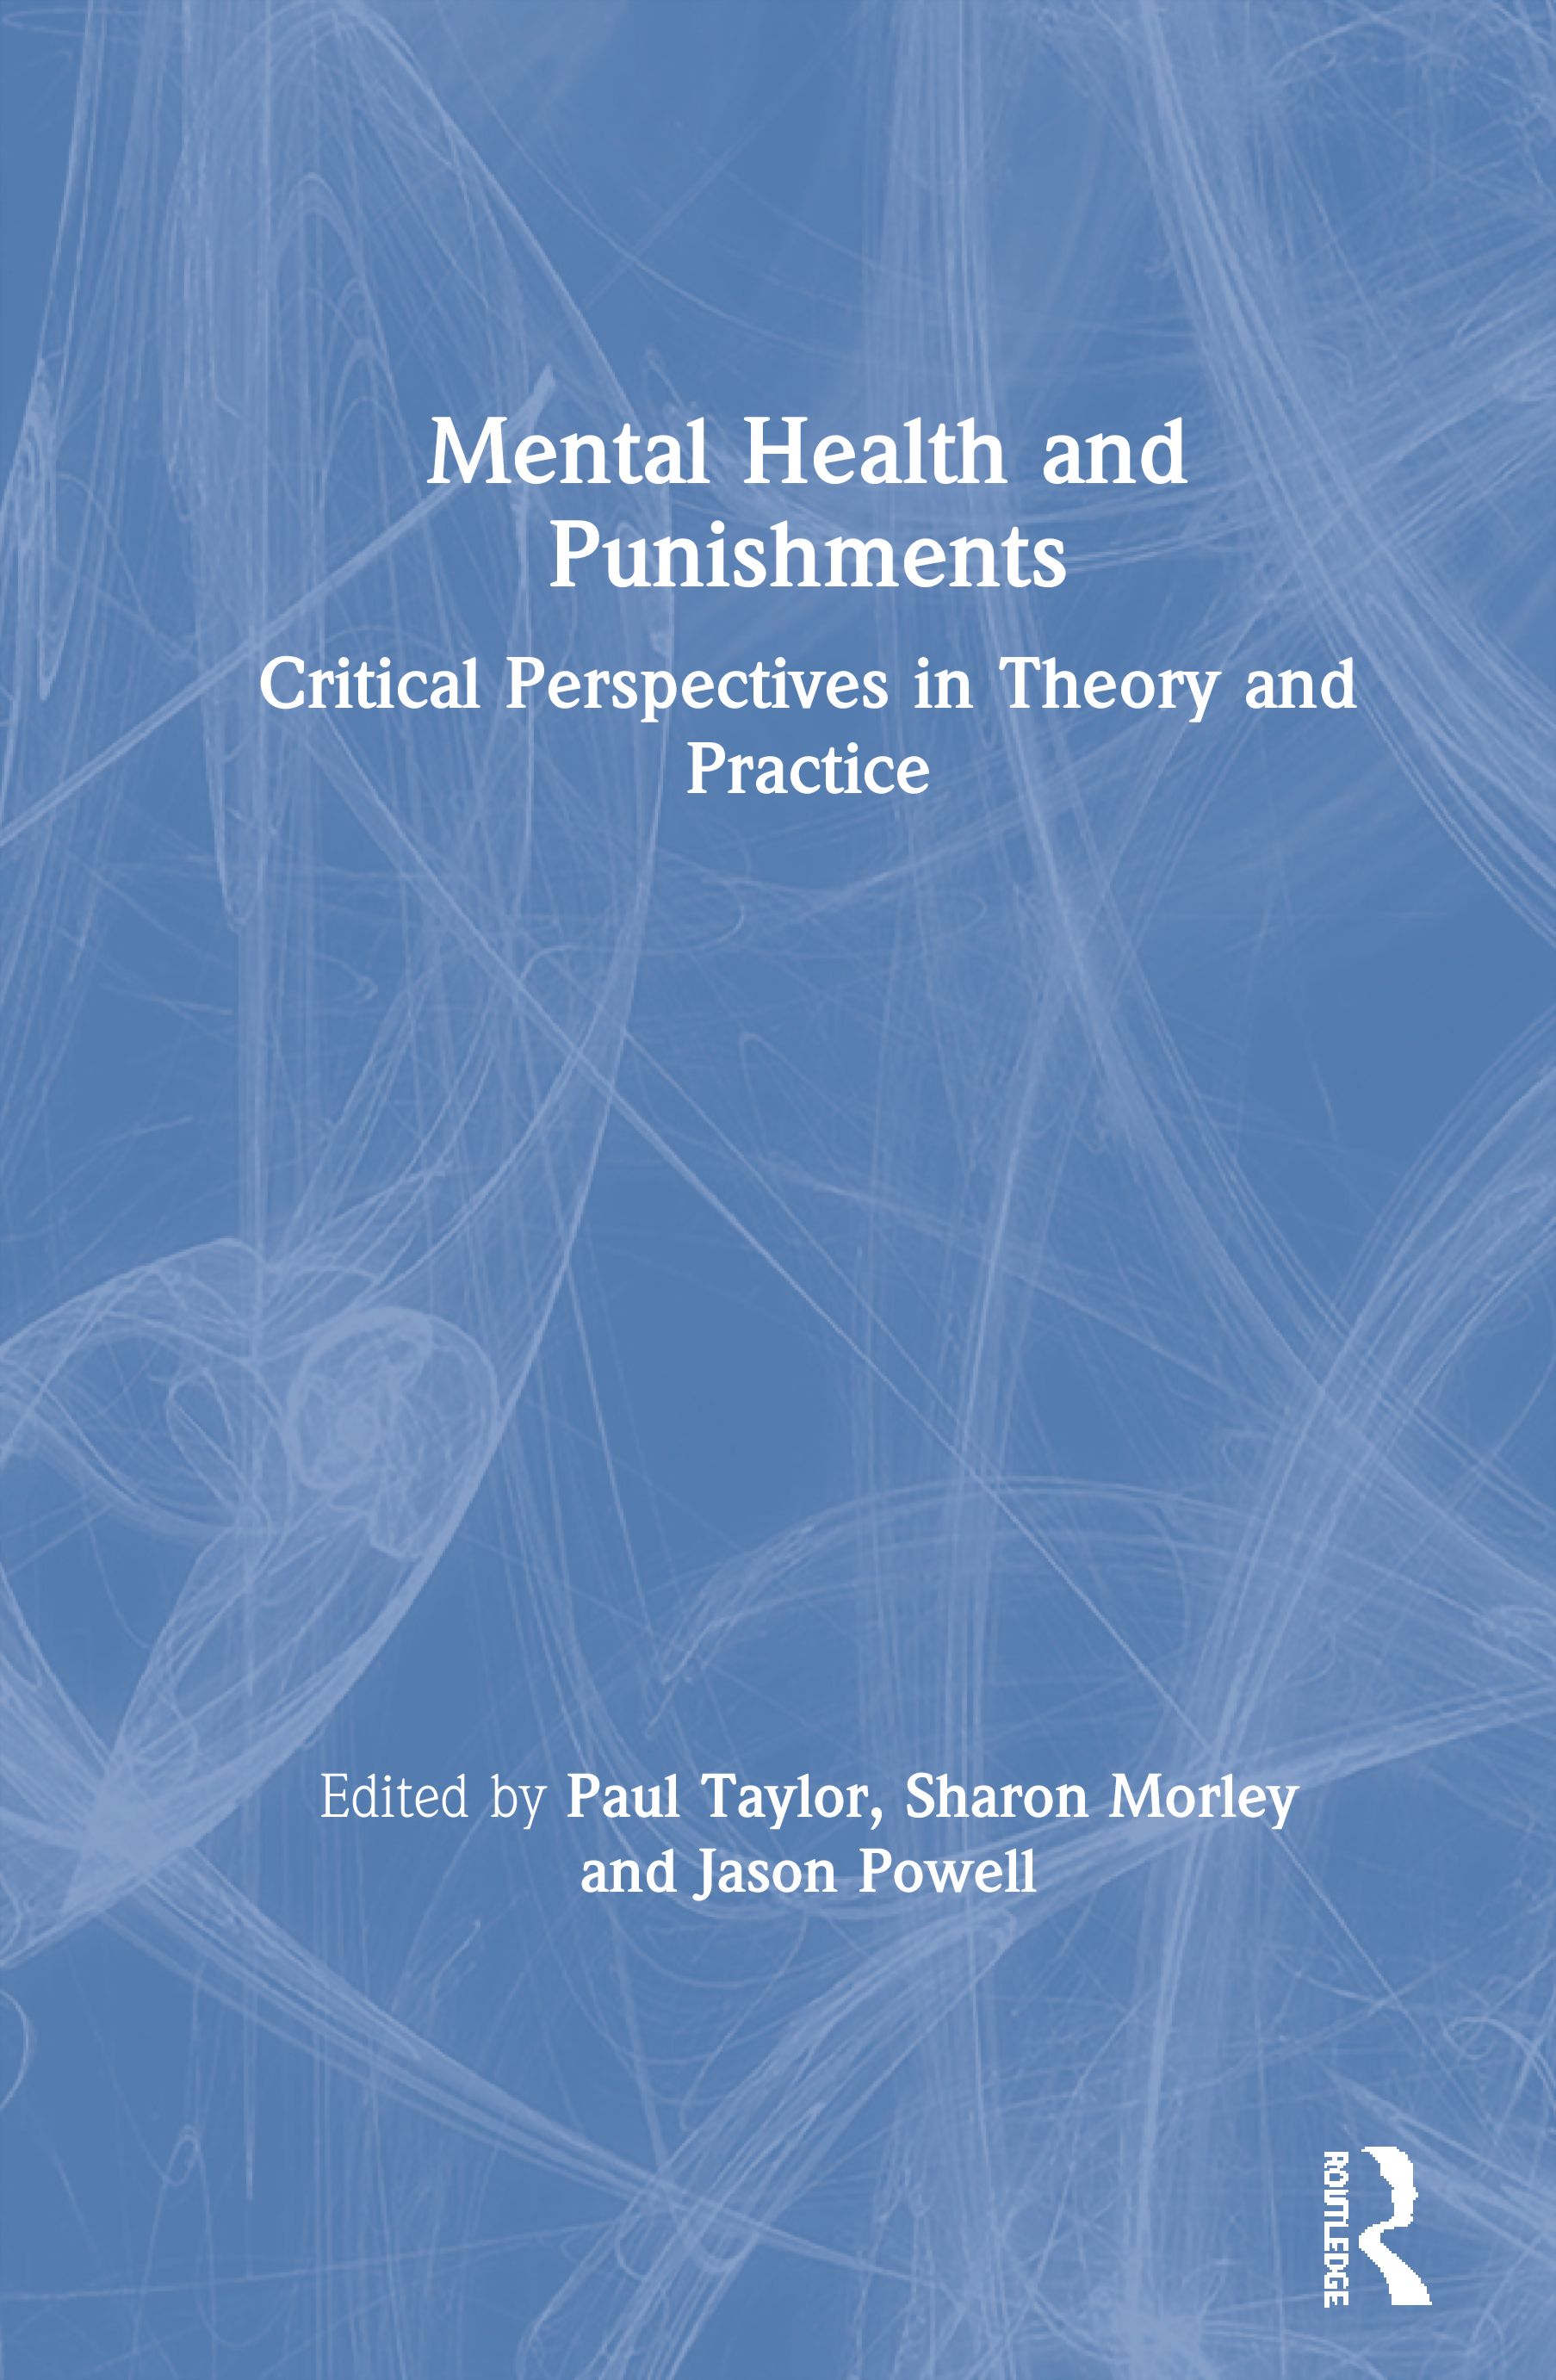 Mental Health and Punishments: Critical Perspectives in Theory and Practice book cover